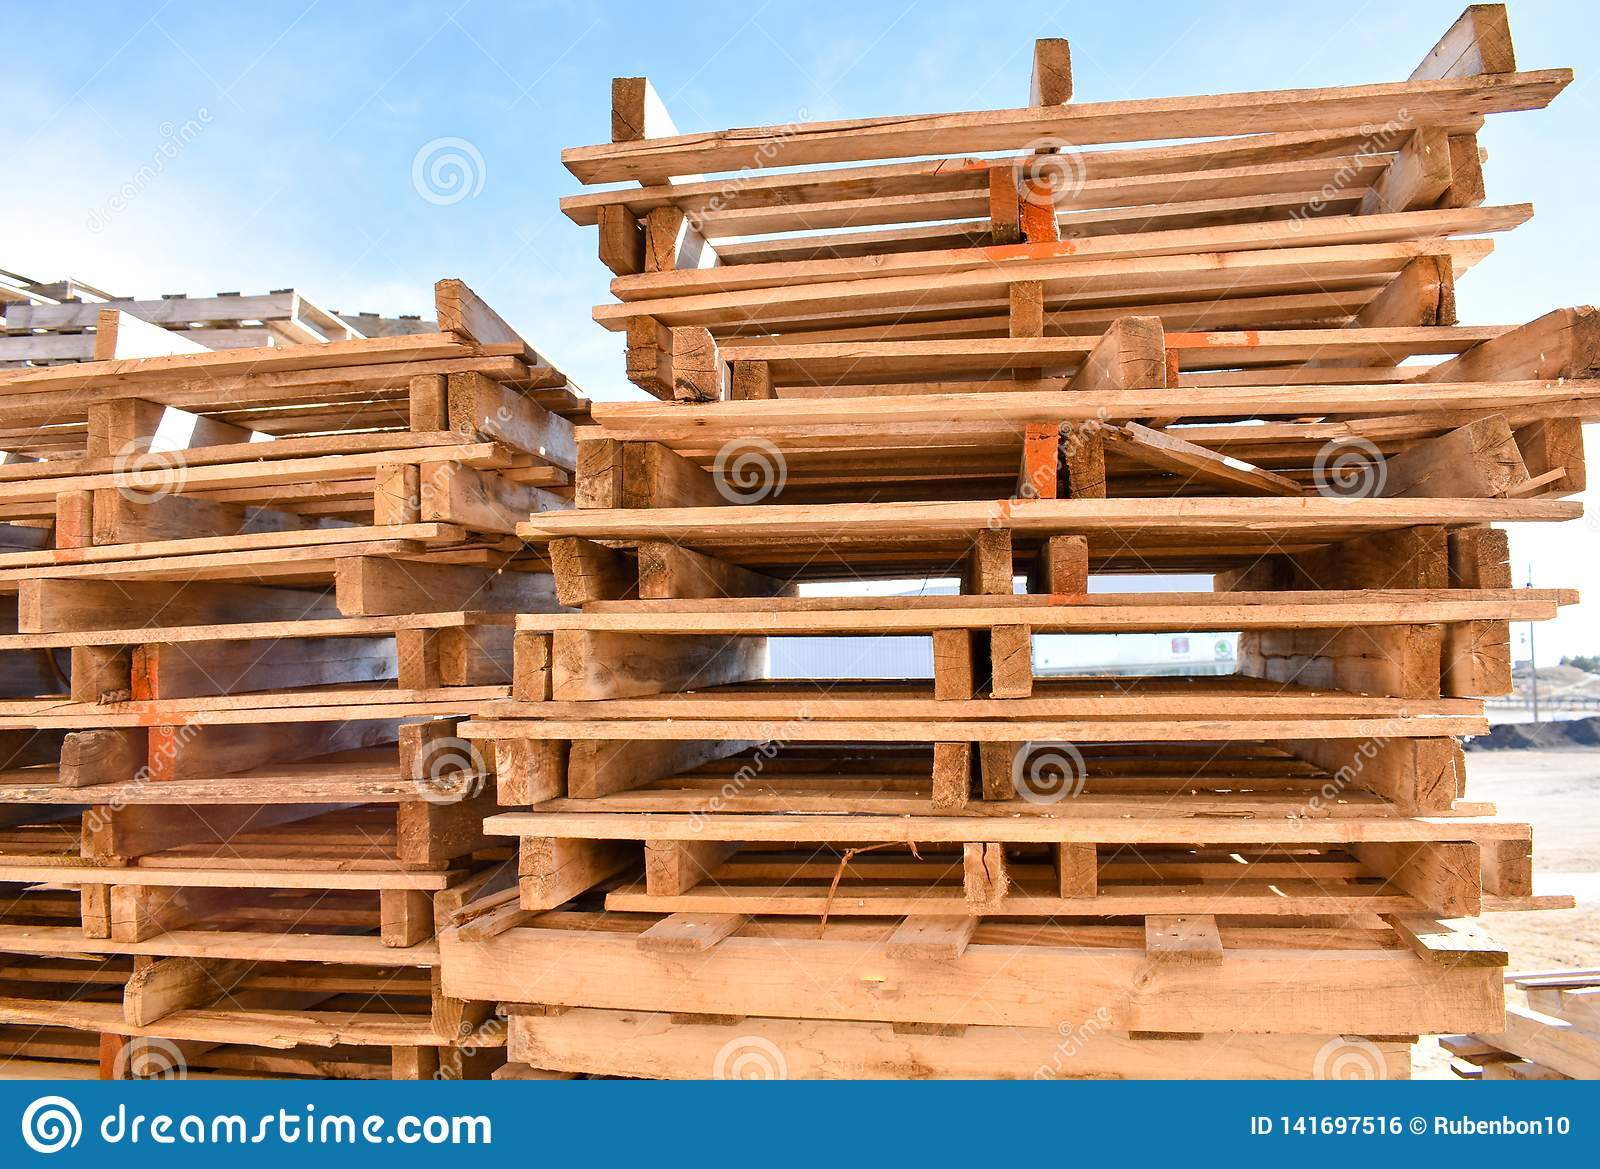 piles of european pallets made in wood ready to be used transporting products or goods on them from a place to other by truck,